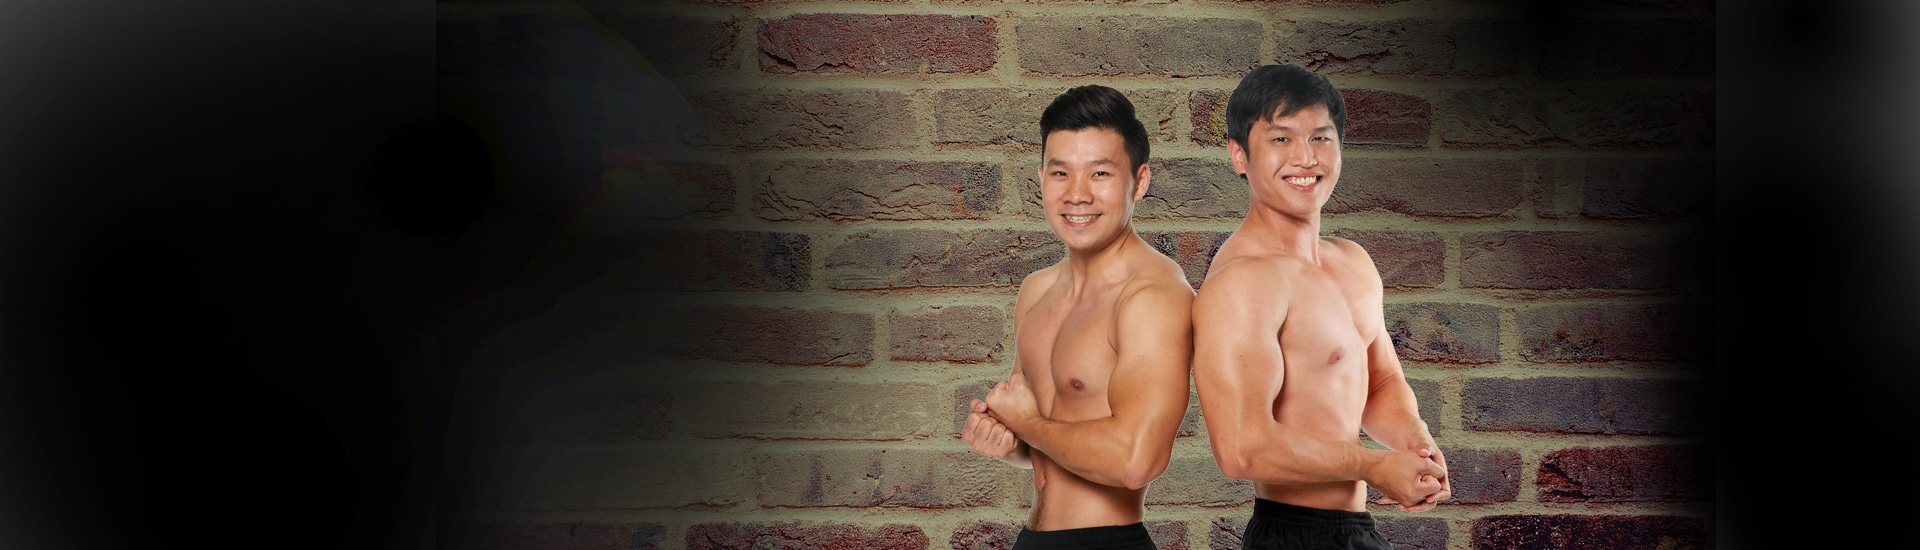 Personal Trainer Banner 4 - Lionel Lim